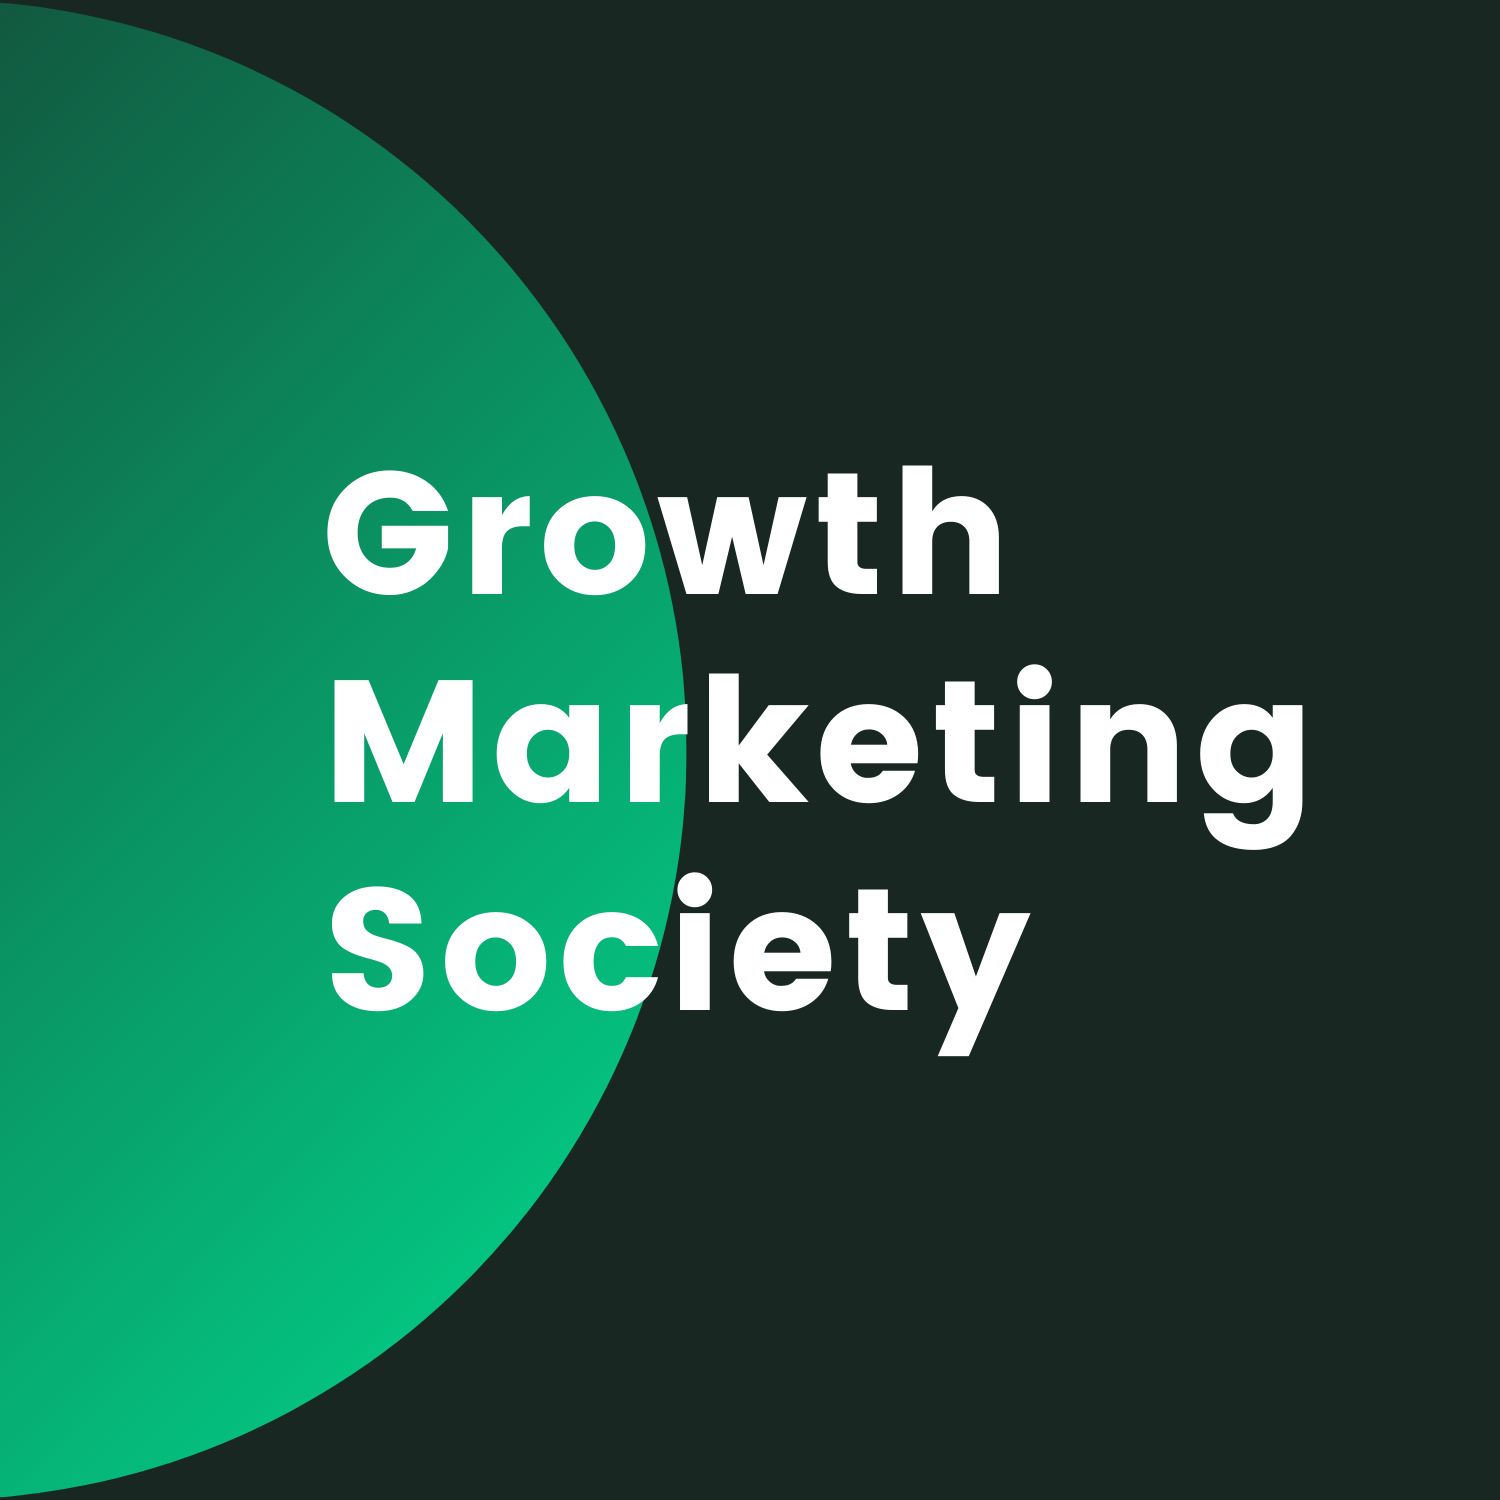 Growth Marketing Society